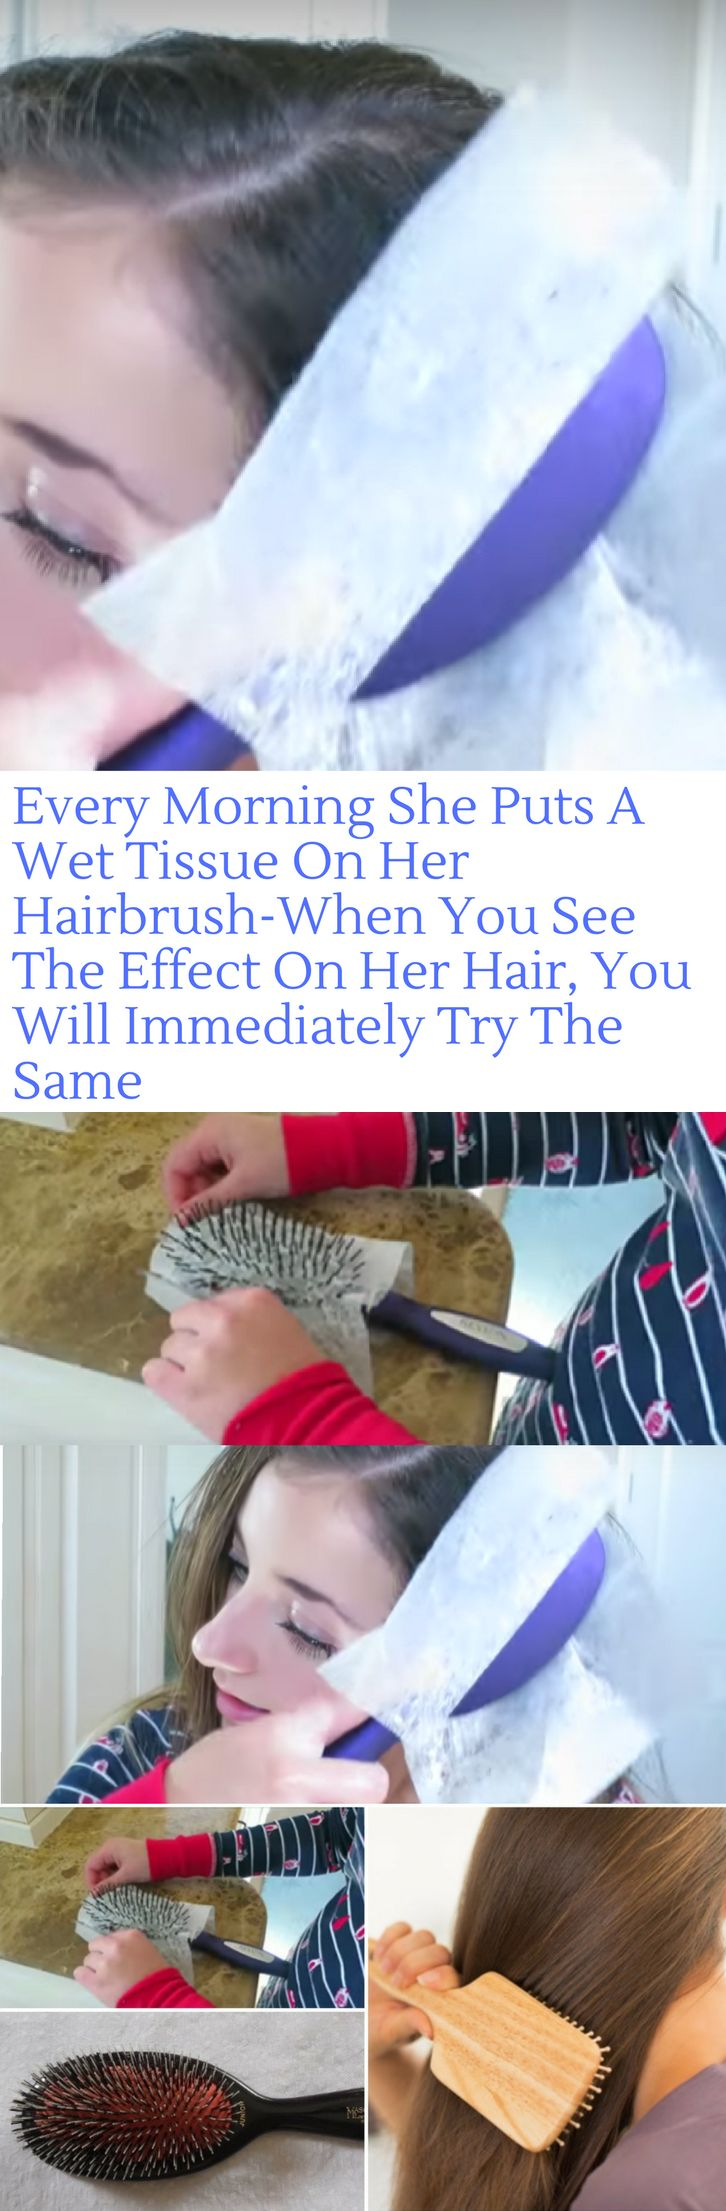 Every Morning She Puts A Wet Tissue On Her Hairbrush-When You See The Effect On Her Hair You Will Immediately Try The Same! (Video)